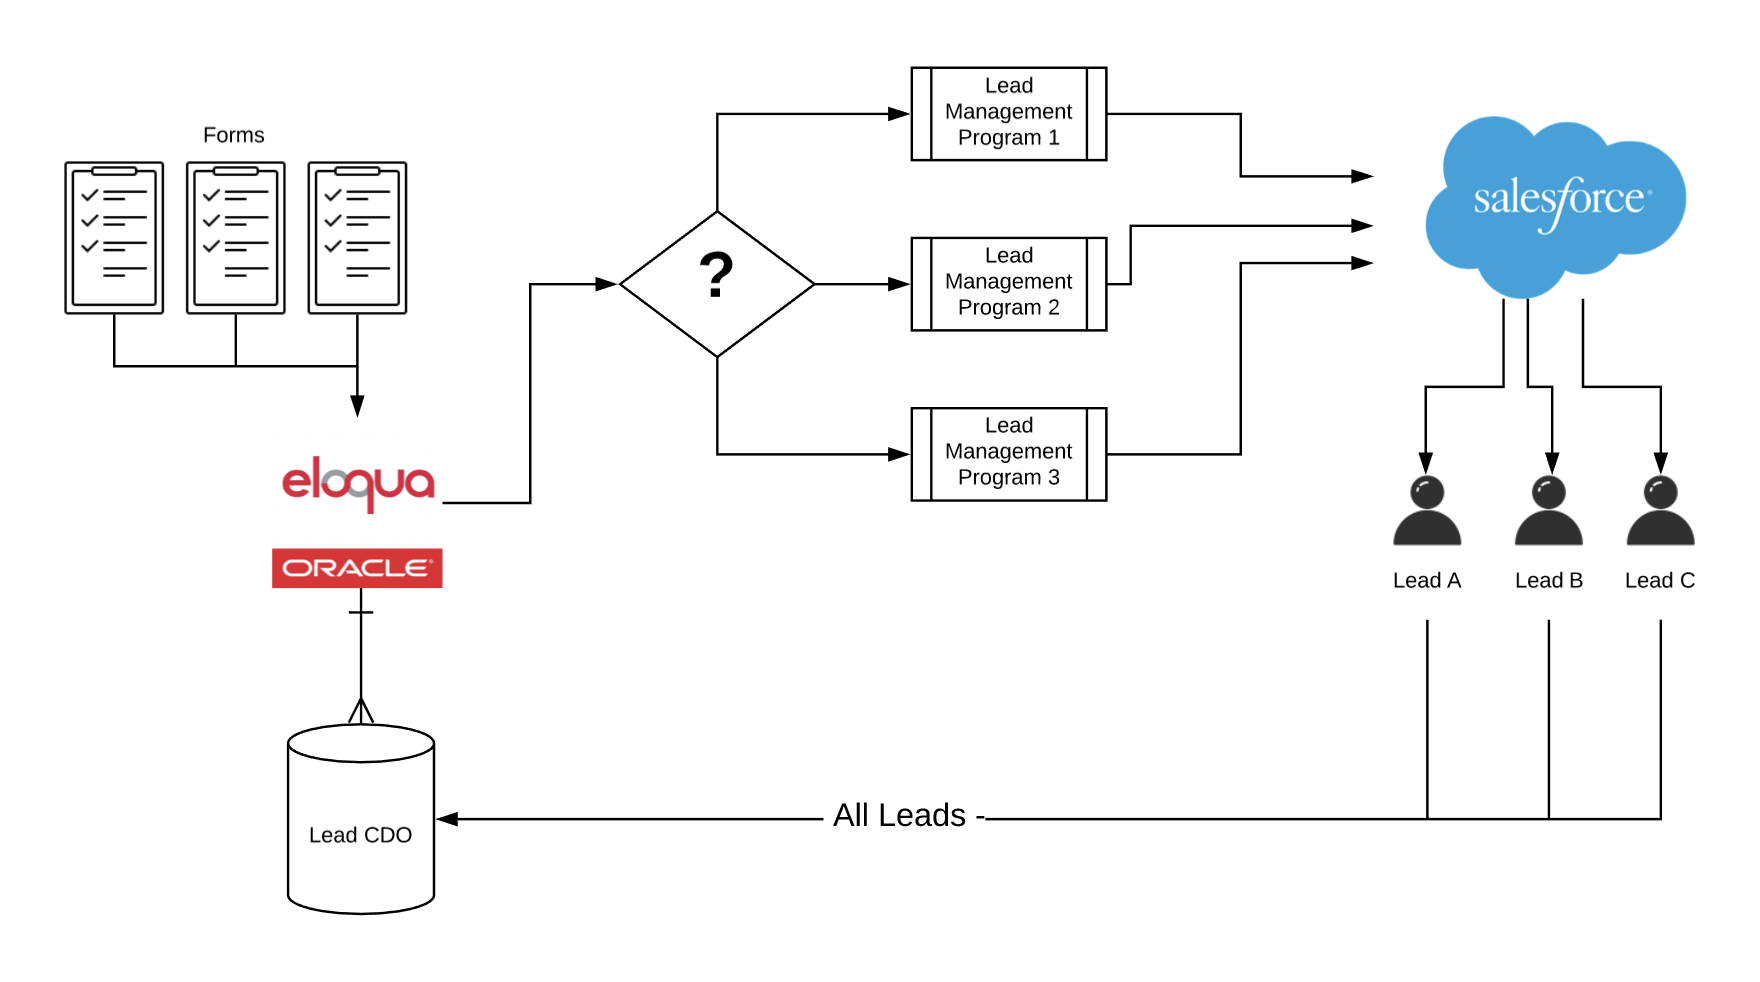 Tegrita Lead Management and Sales Alignment Process (sample)